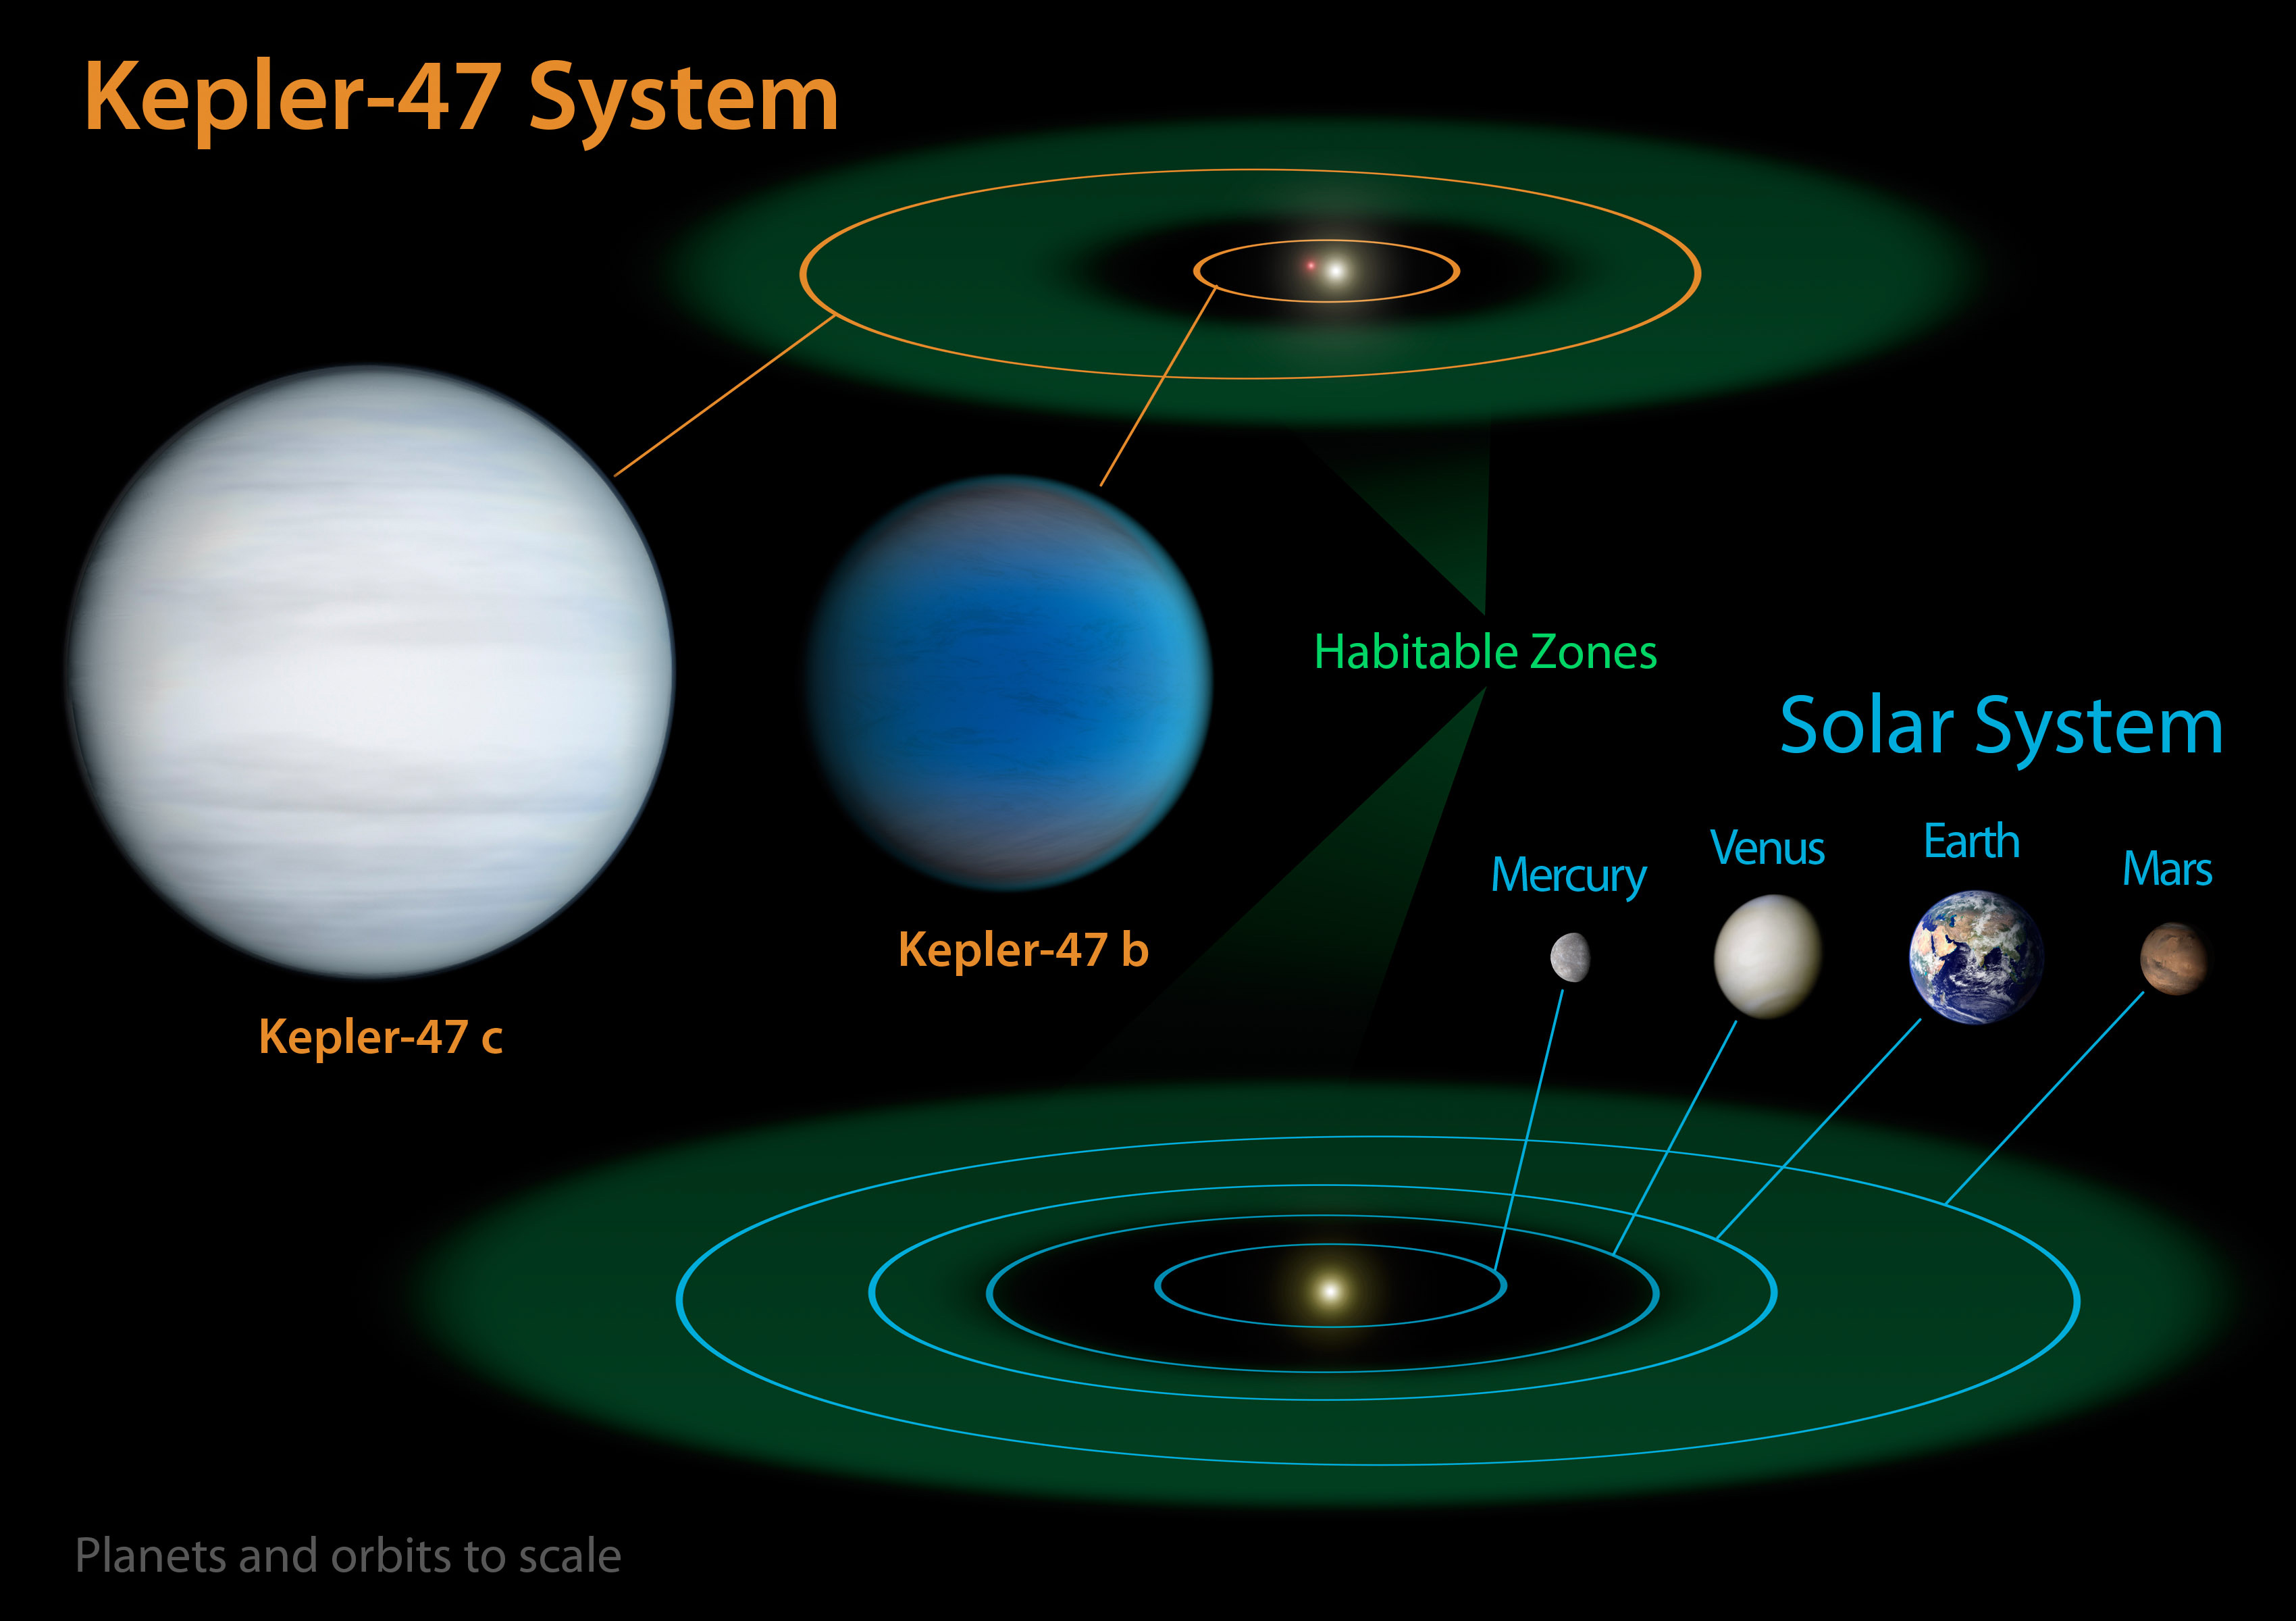 Diagram comparing our Solar System with Kepler-47 | IAU